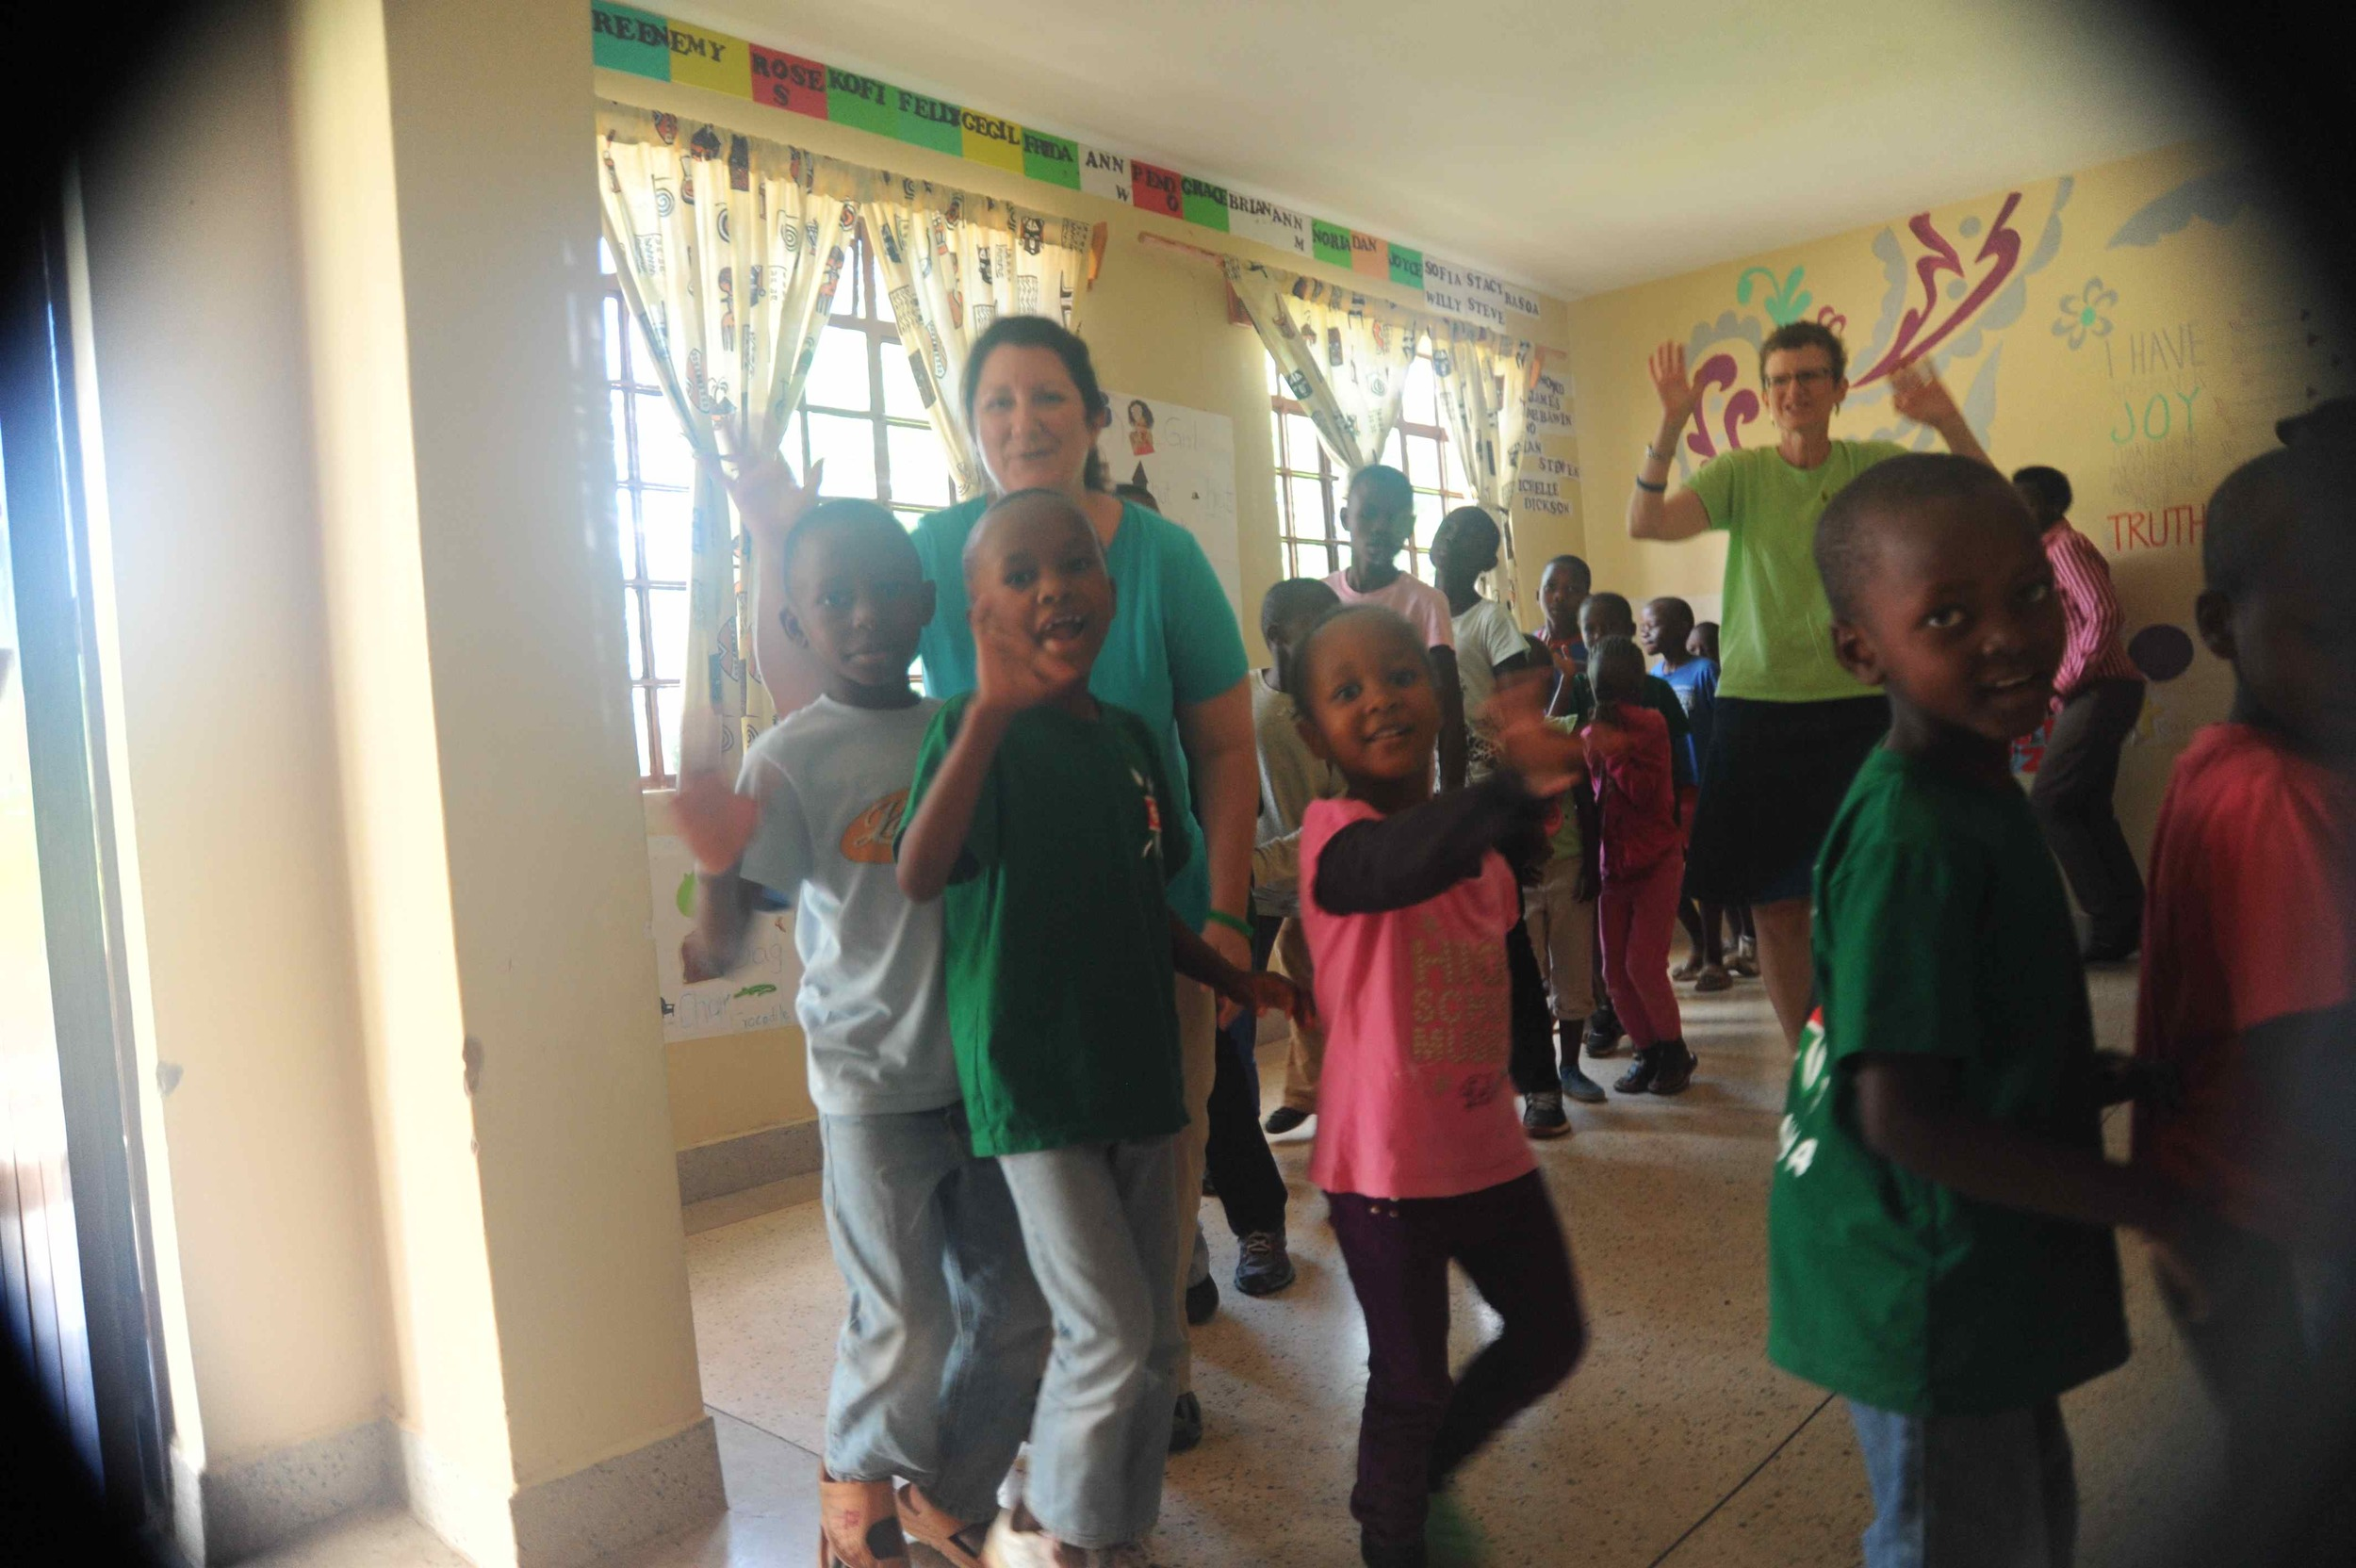 """We were treated to a """"show"""" by the students in the morning and then laughed, danced, and sang our way through the early afternoon."""